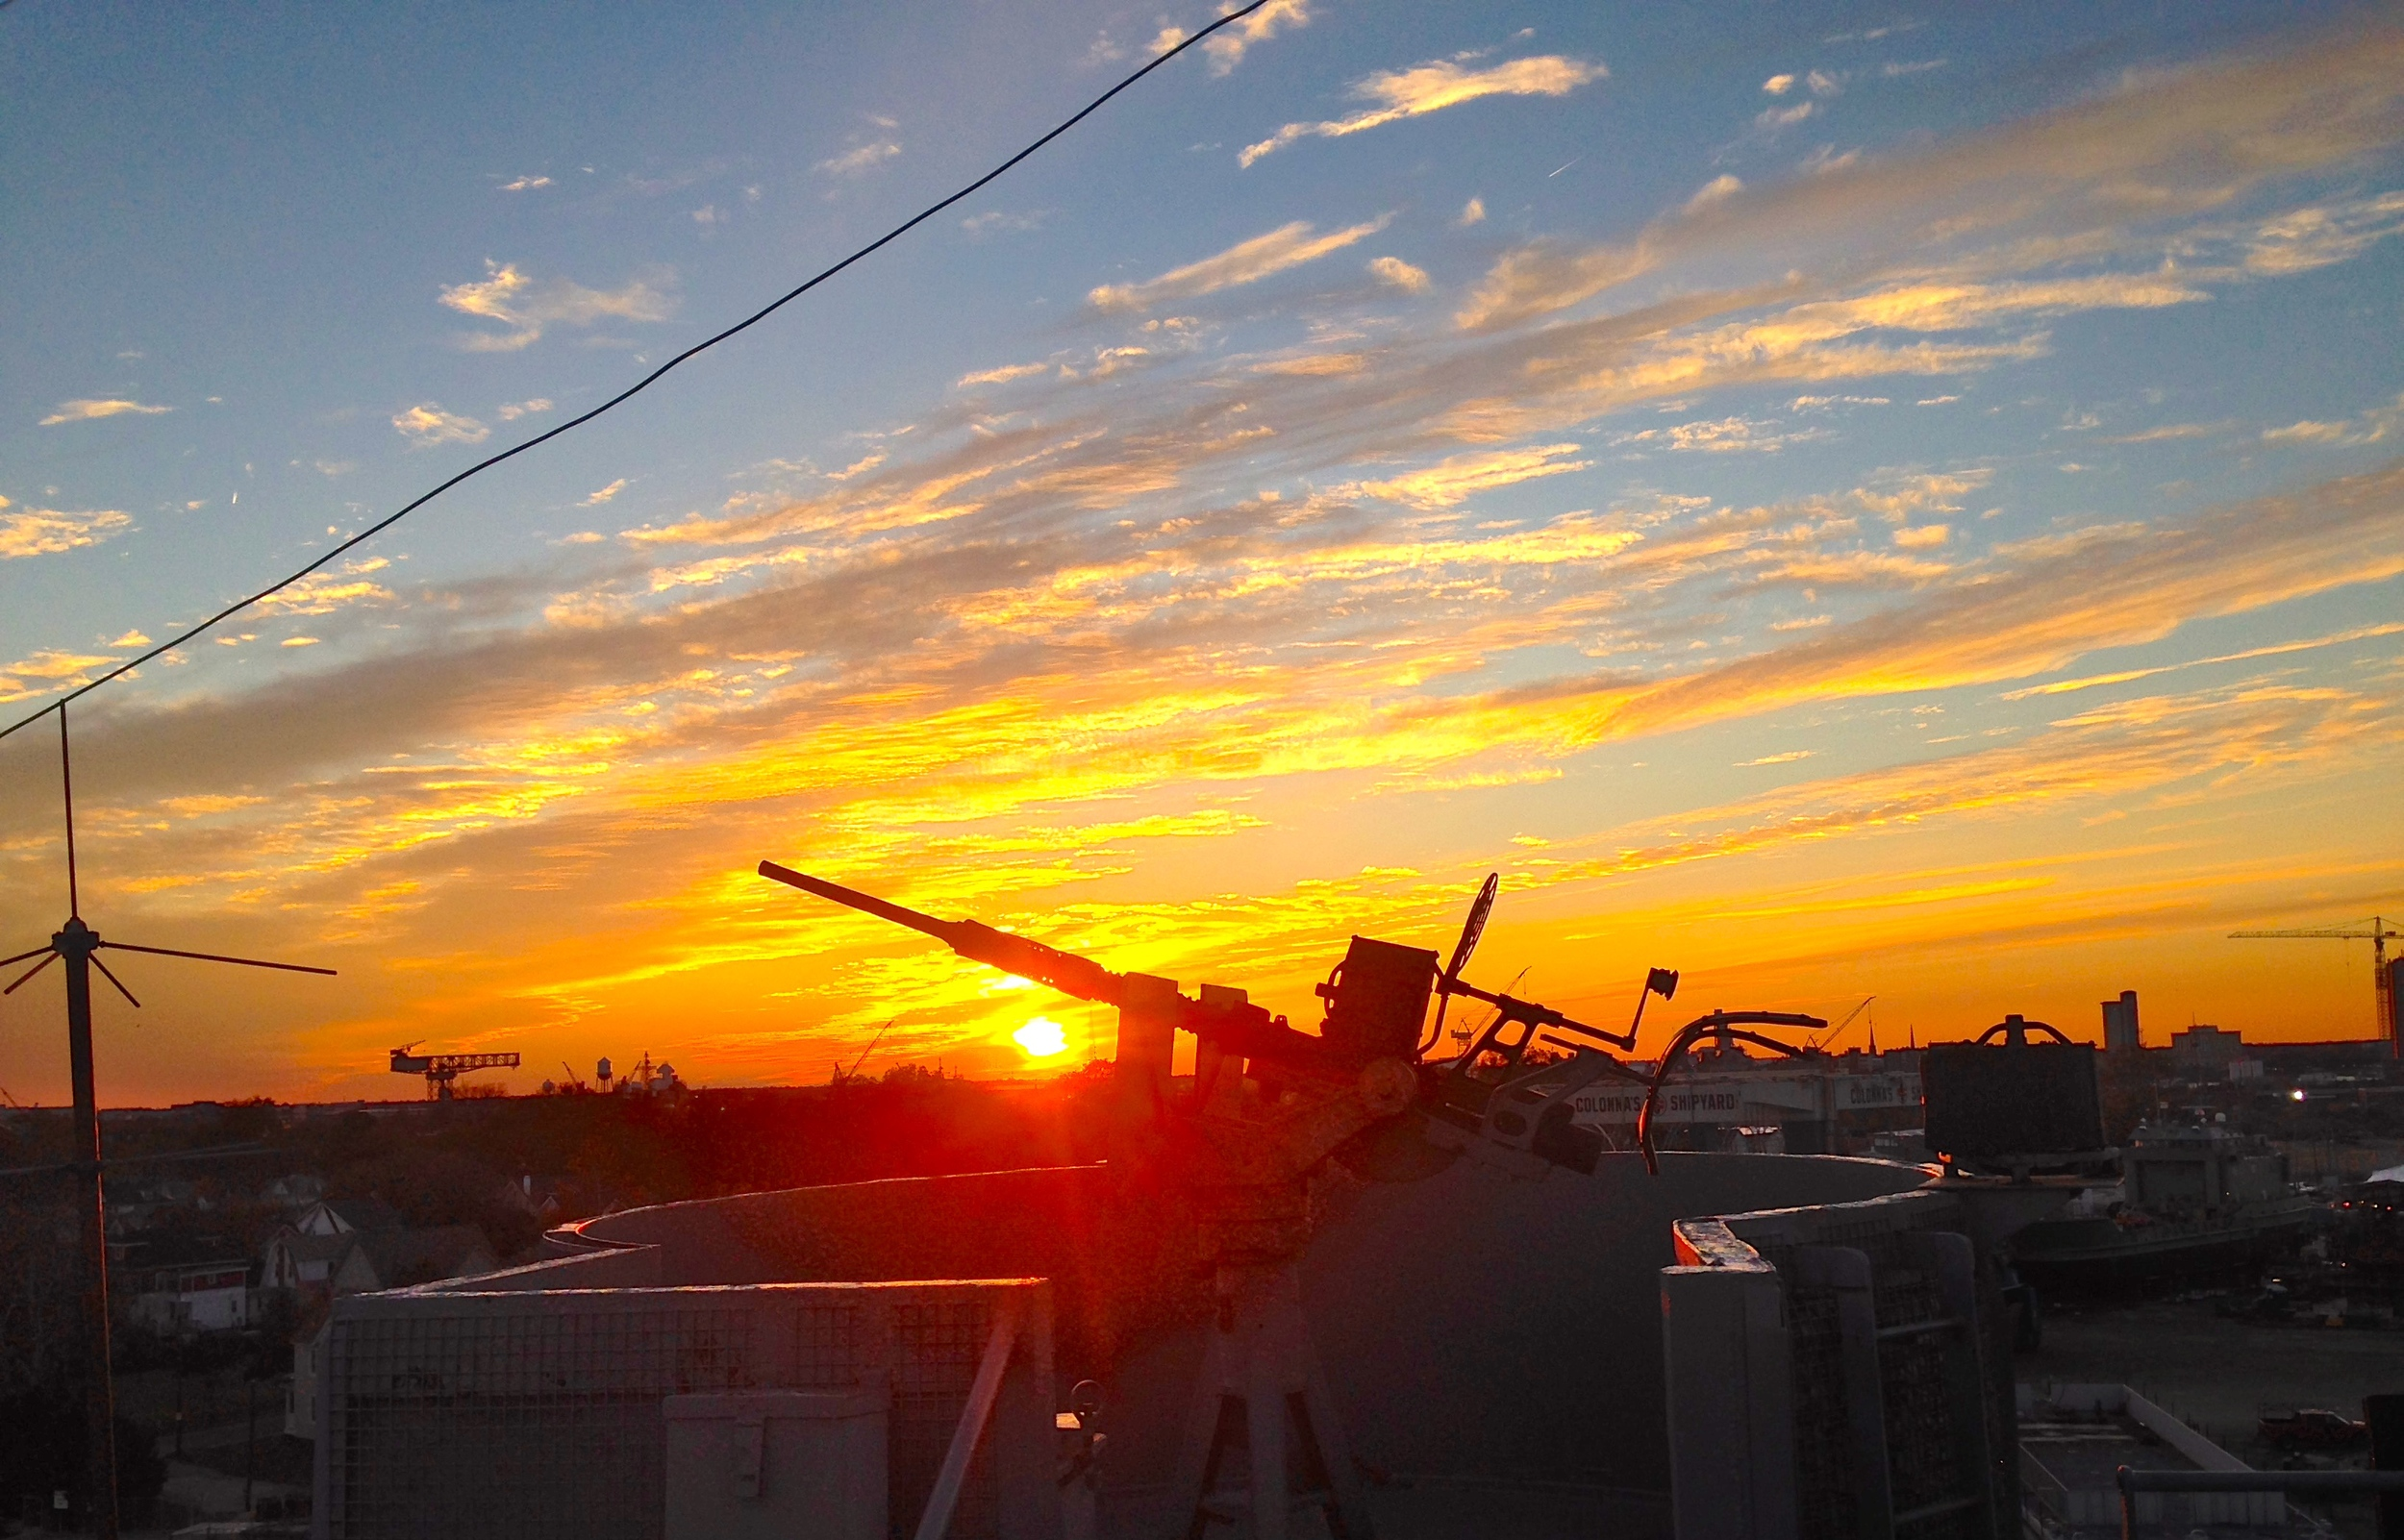 """The end of the day brings a regular """"debriefing"""" with the crew including a great view of the sunset over Portsmouth and Norfolk VA. On the Horizon you can see the Hammerhead Crane used in the construction of American Battleships, which we will detail in a later post!"""